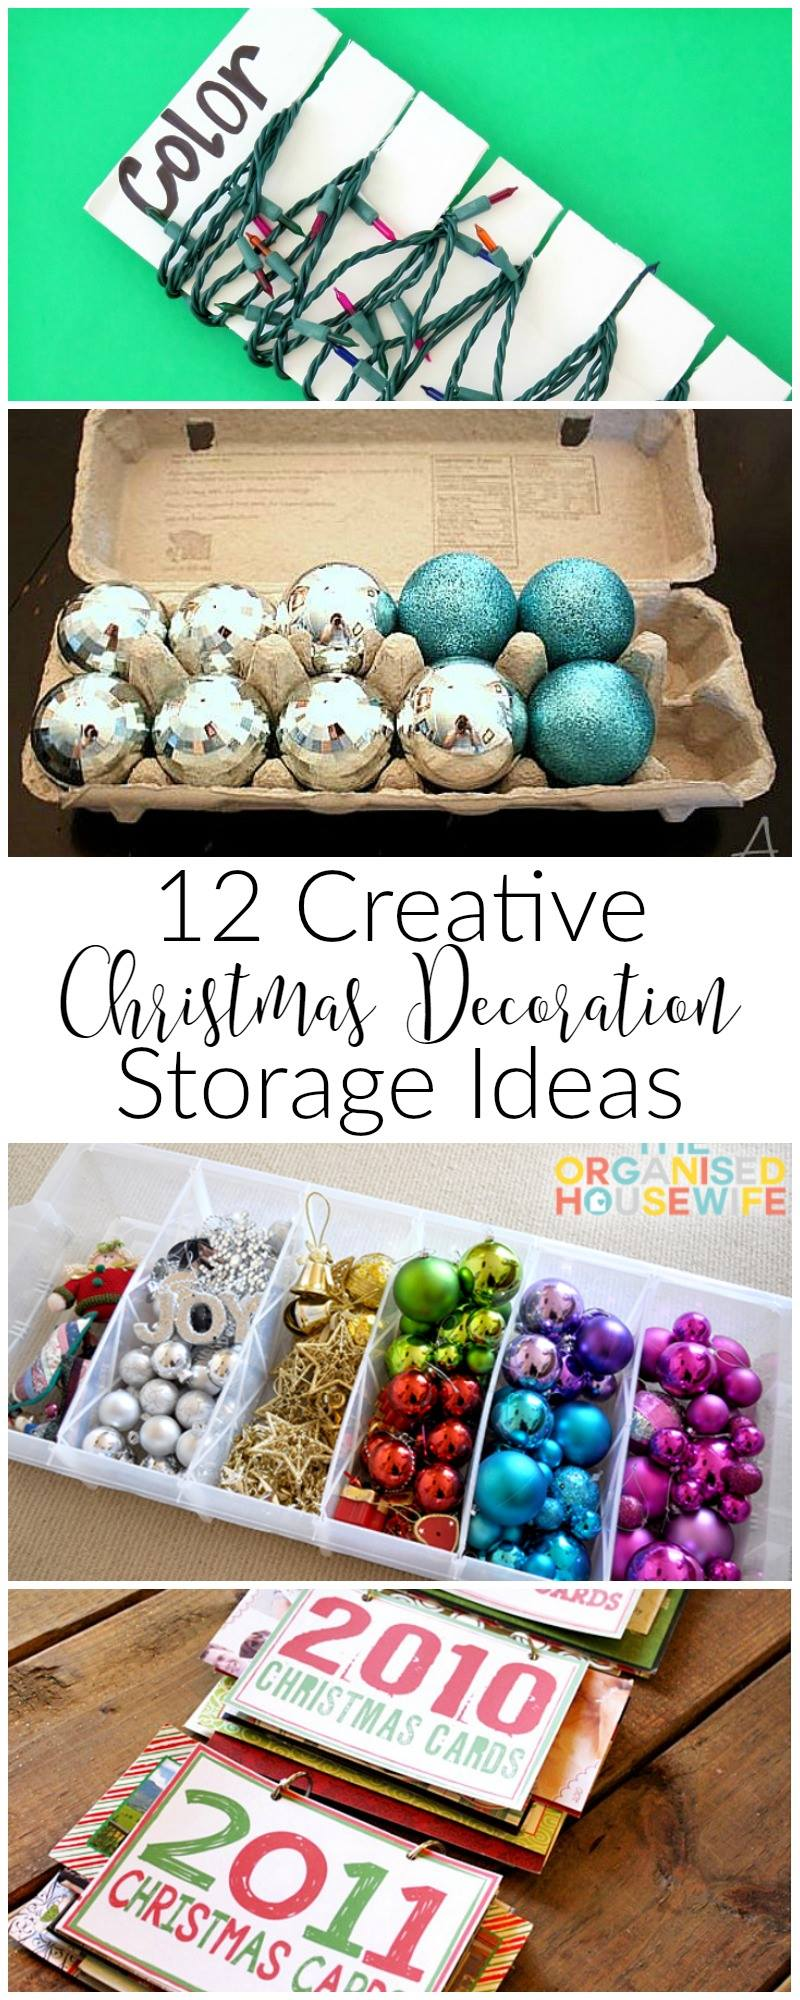 creative-christmas-decoration-storage-ideas